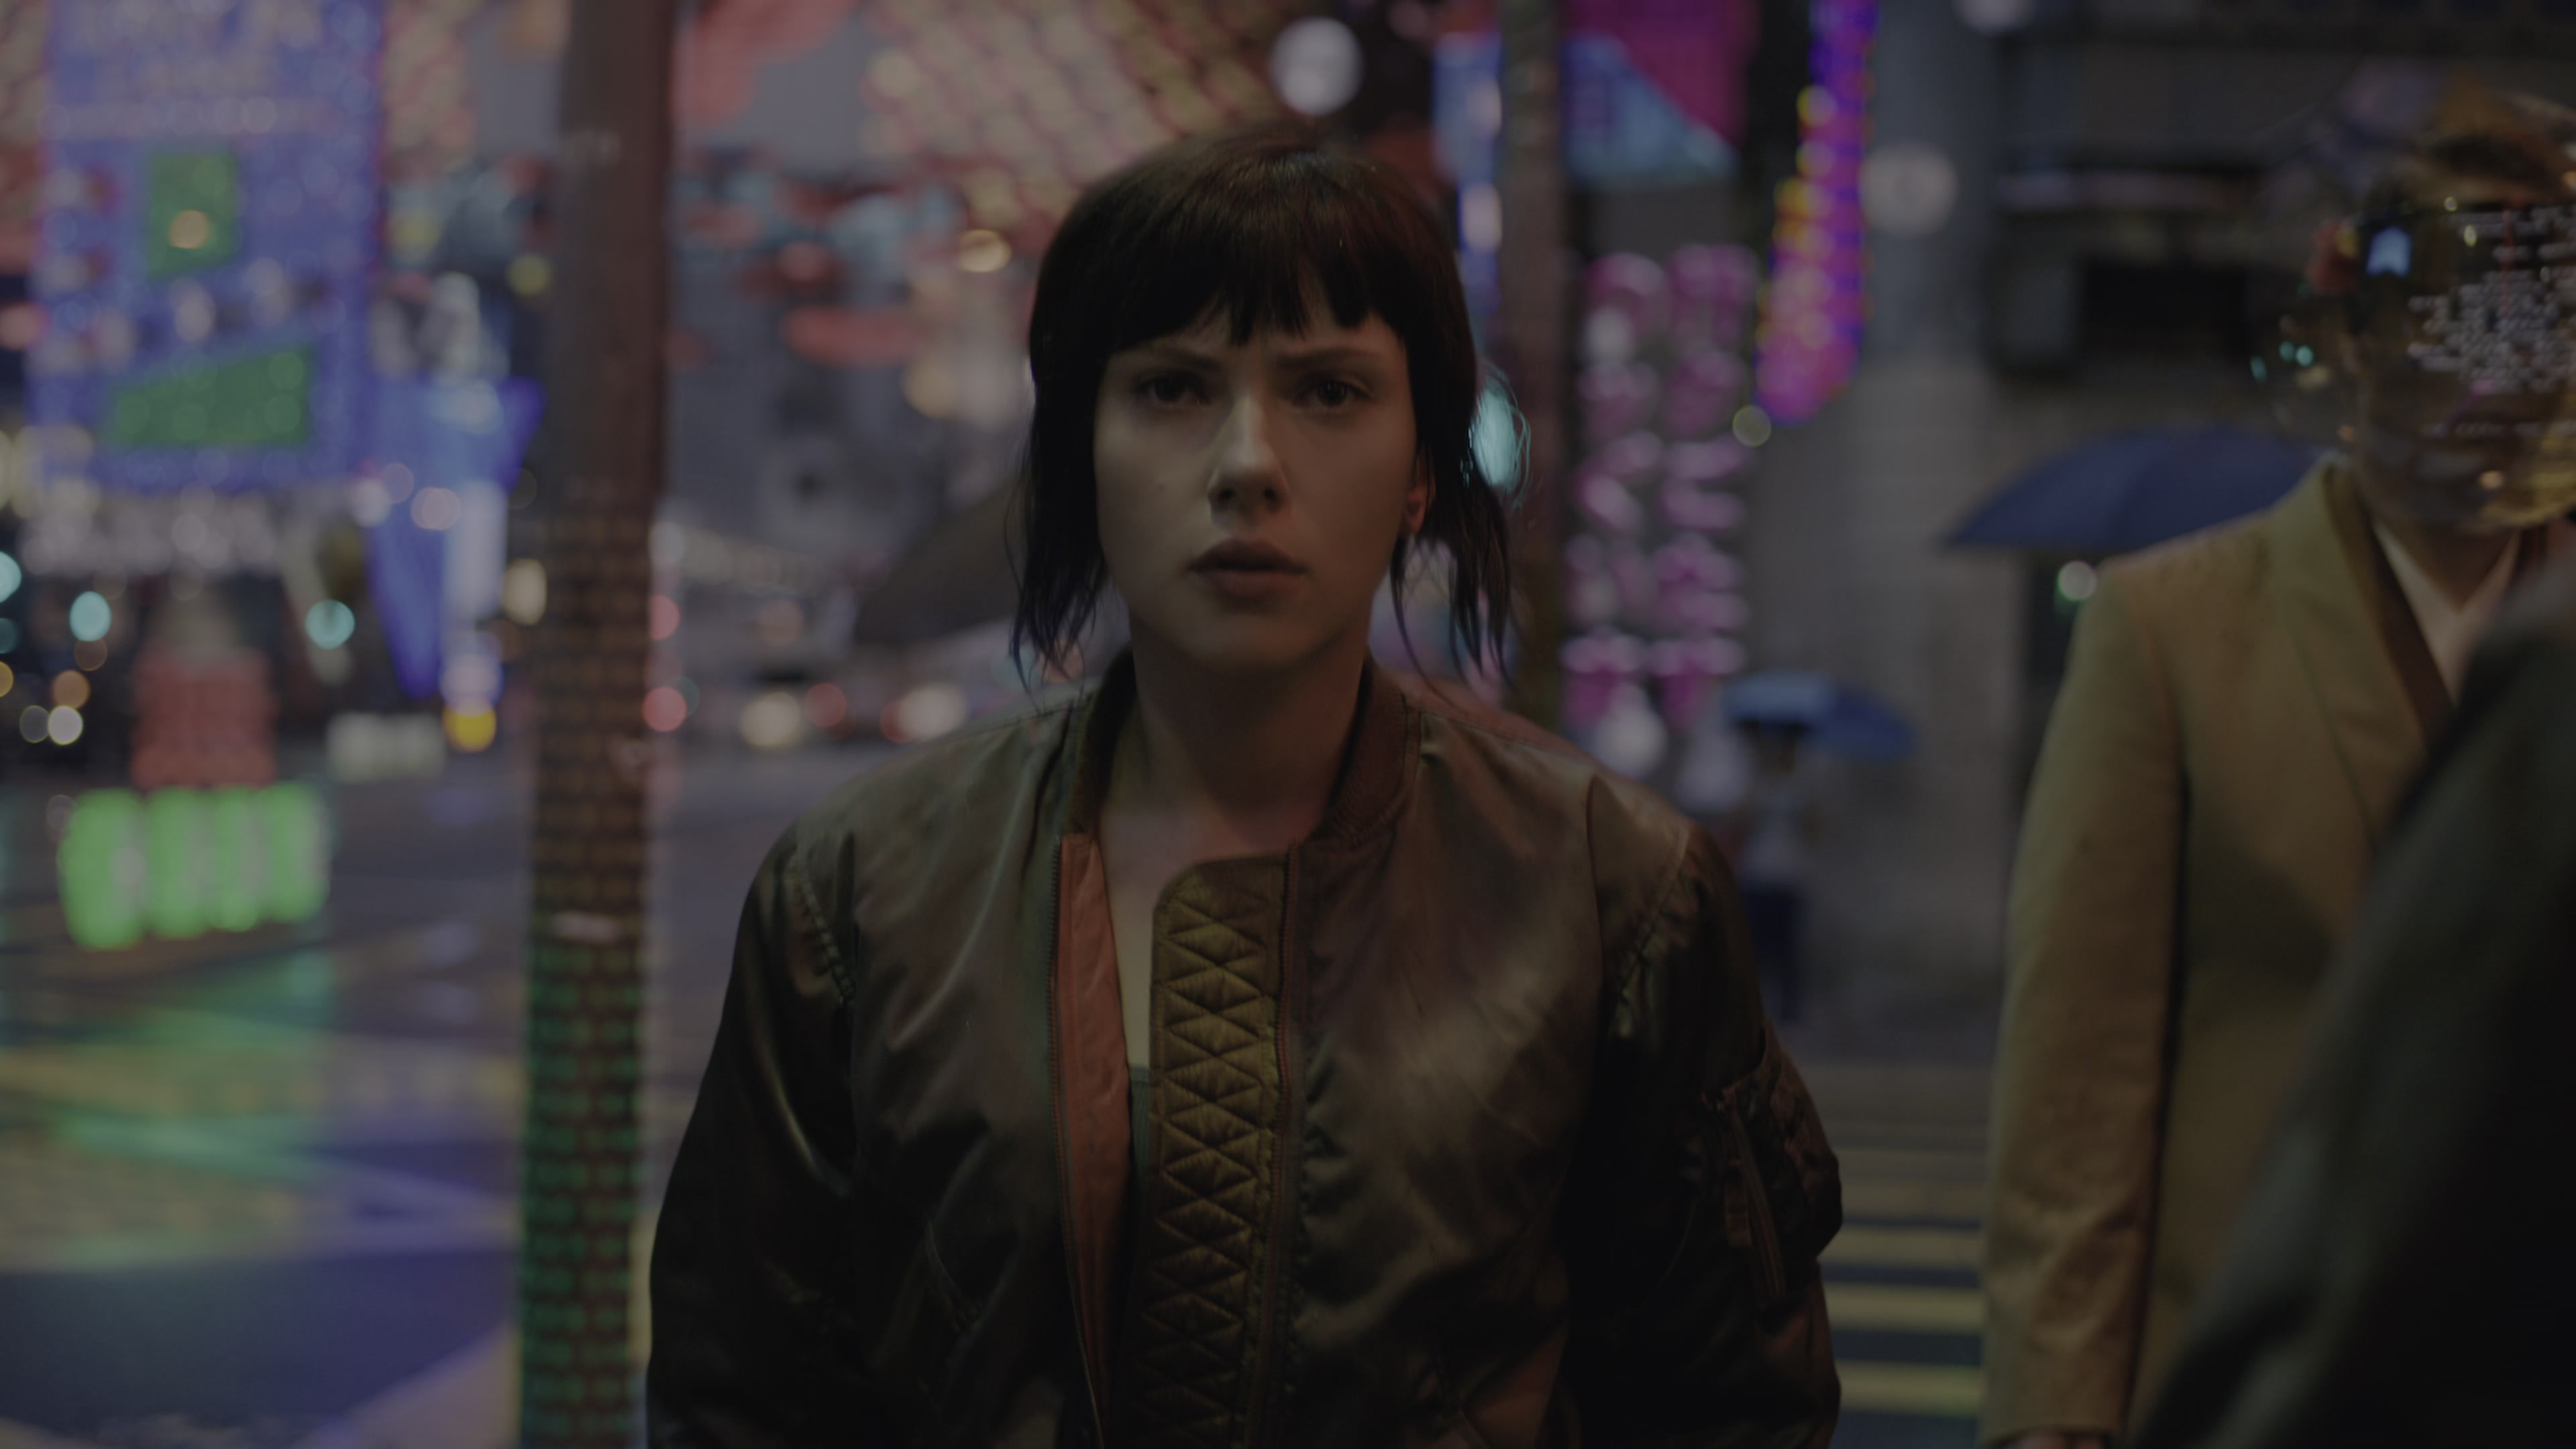 Ghost in the Shell 2017 UHD BluRay HDR10 2160p Dts-HD Ma7 1 HEVC-d3g